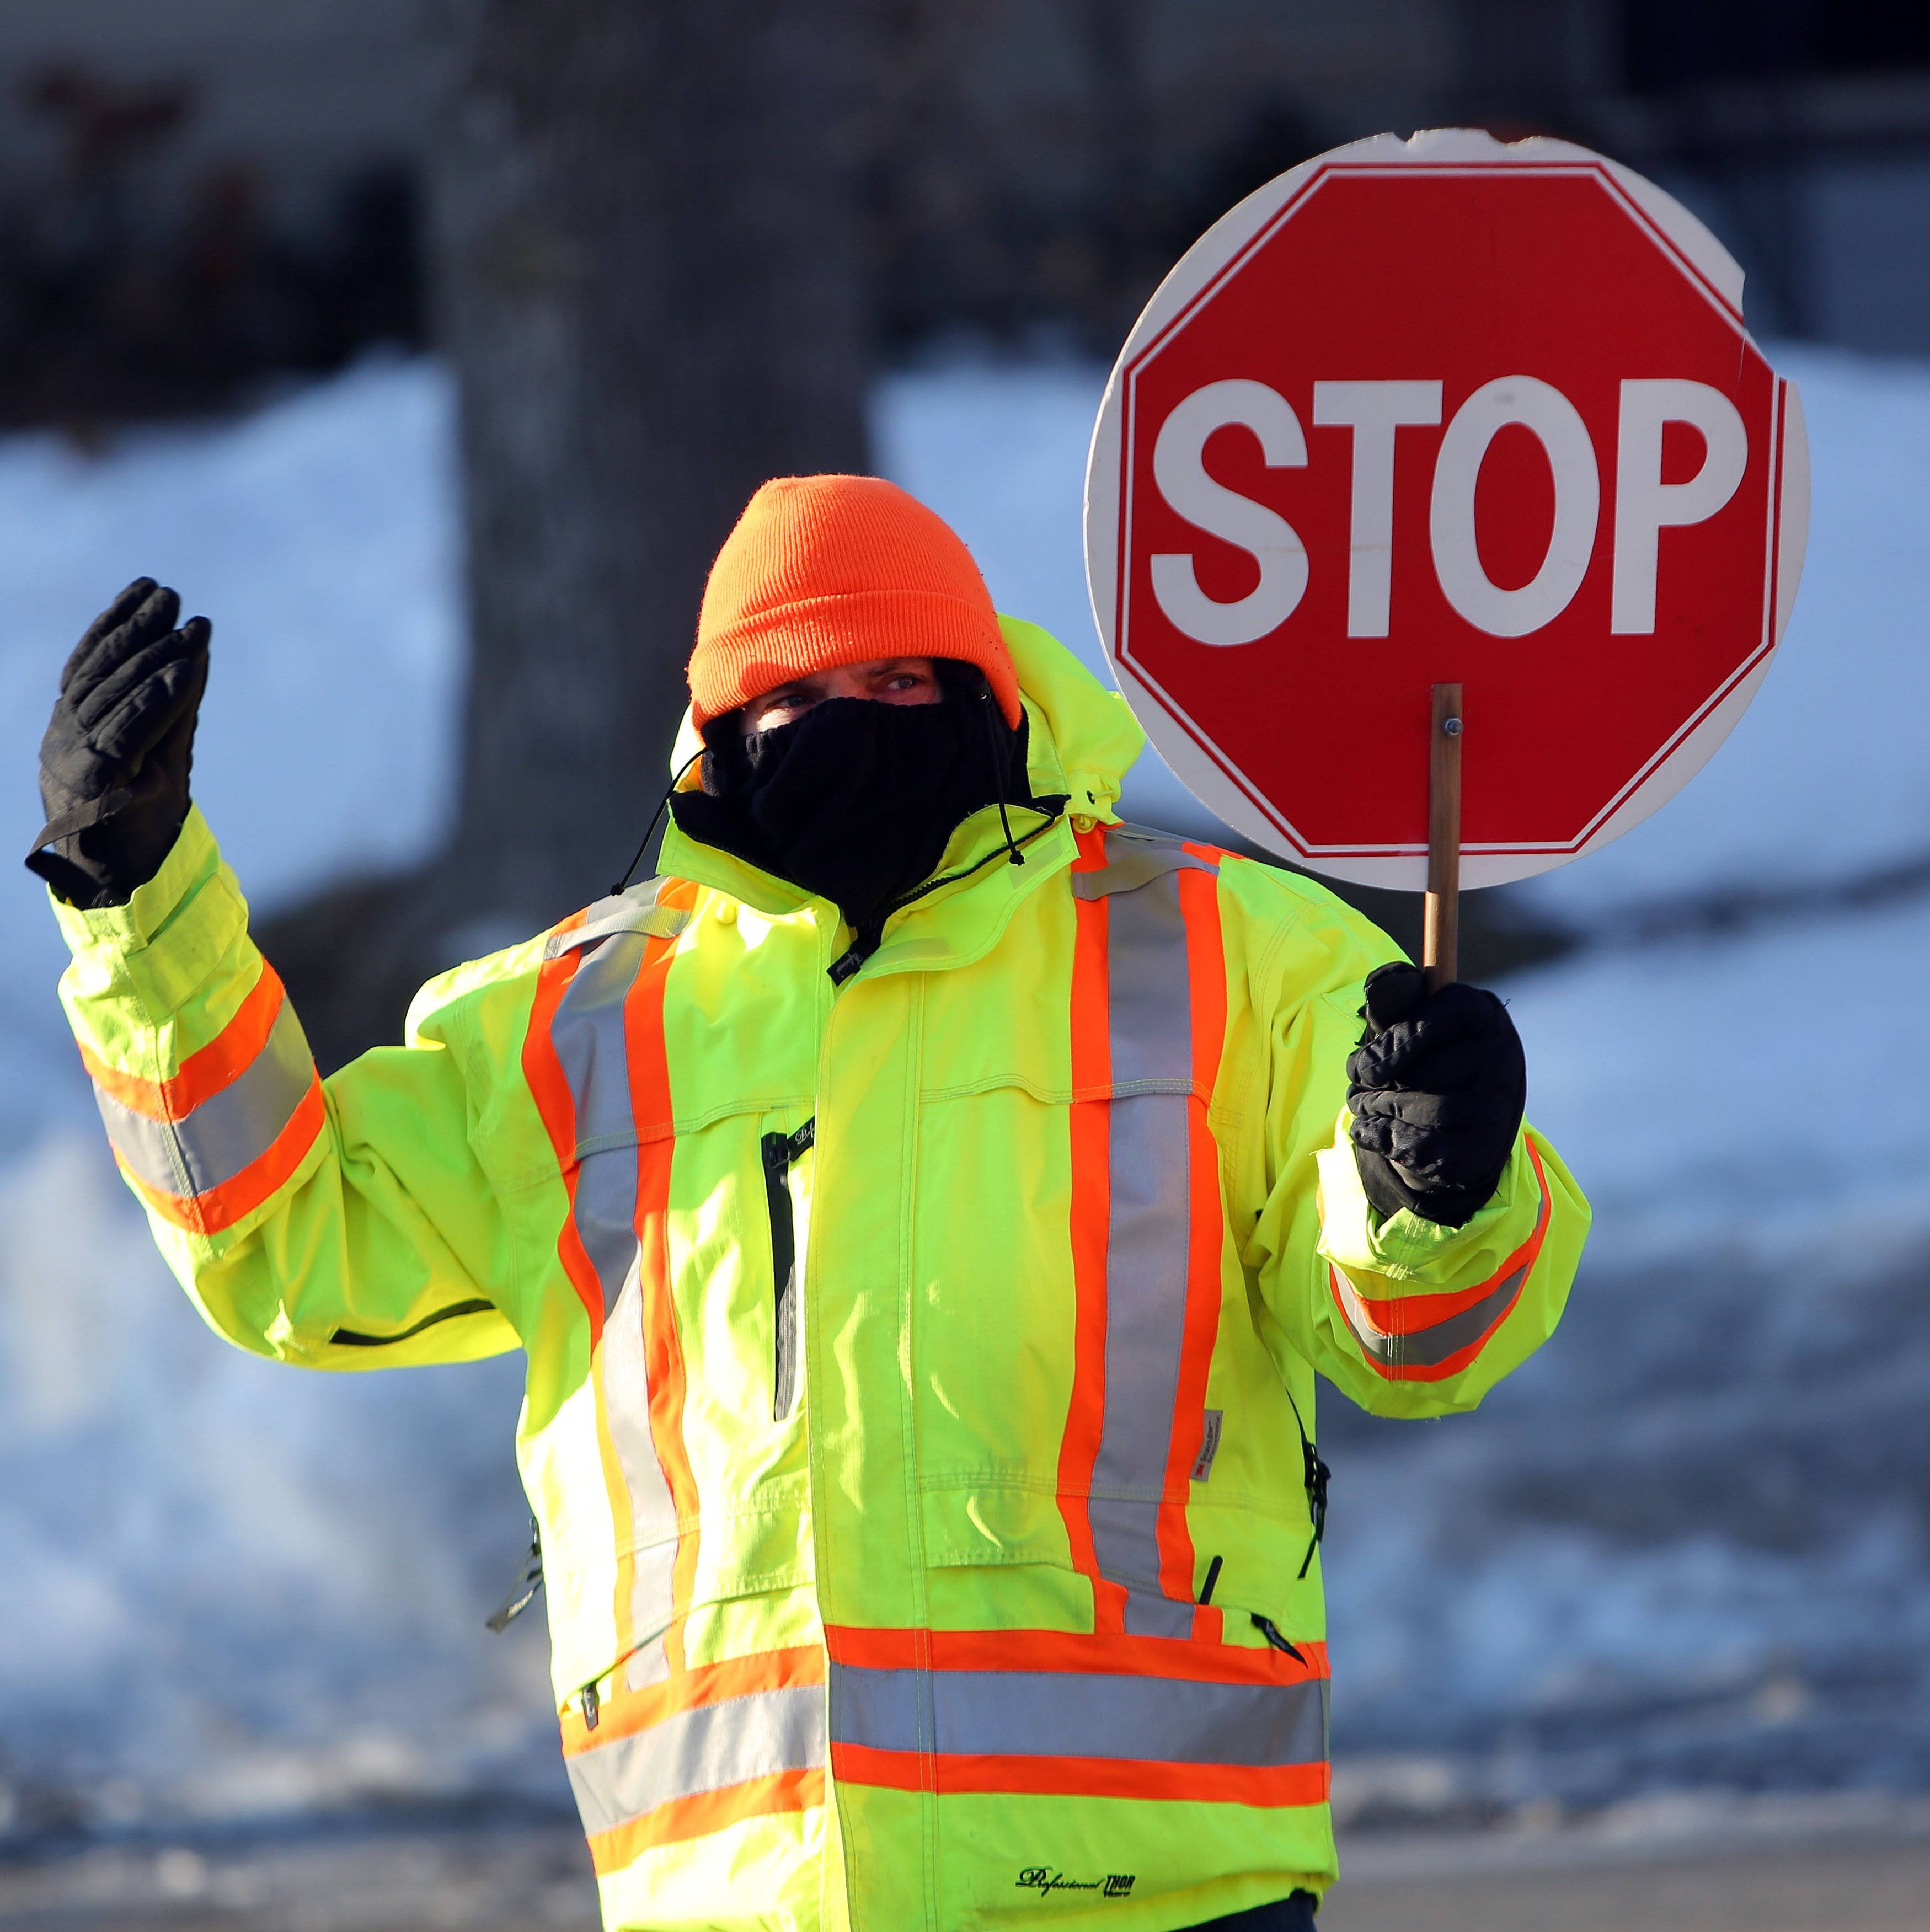 Rockland Elementary School custodian Angelo Buttitta is bundled up while directing traffic as temperatures dipped into the single digits earlier this month in Libertyville.